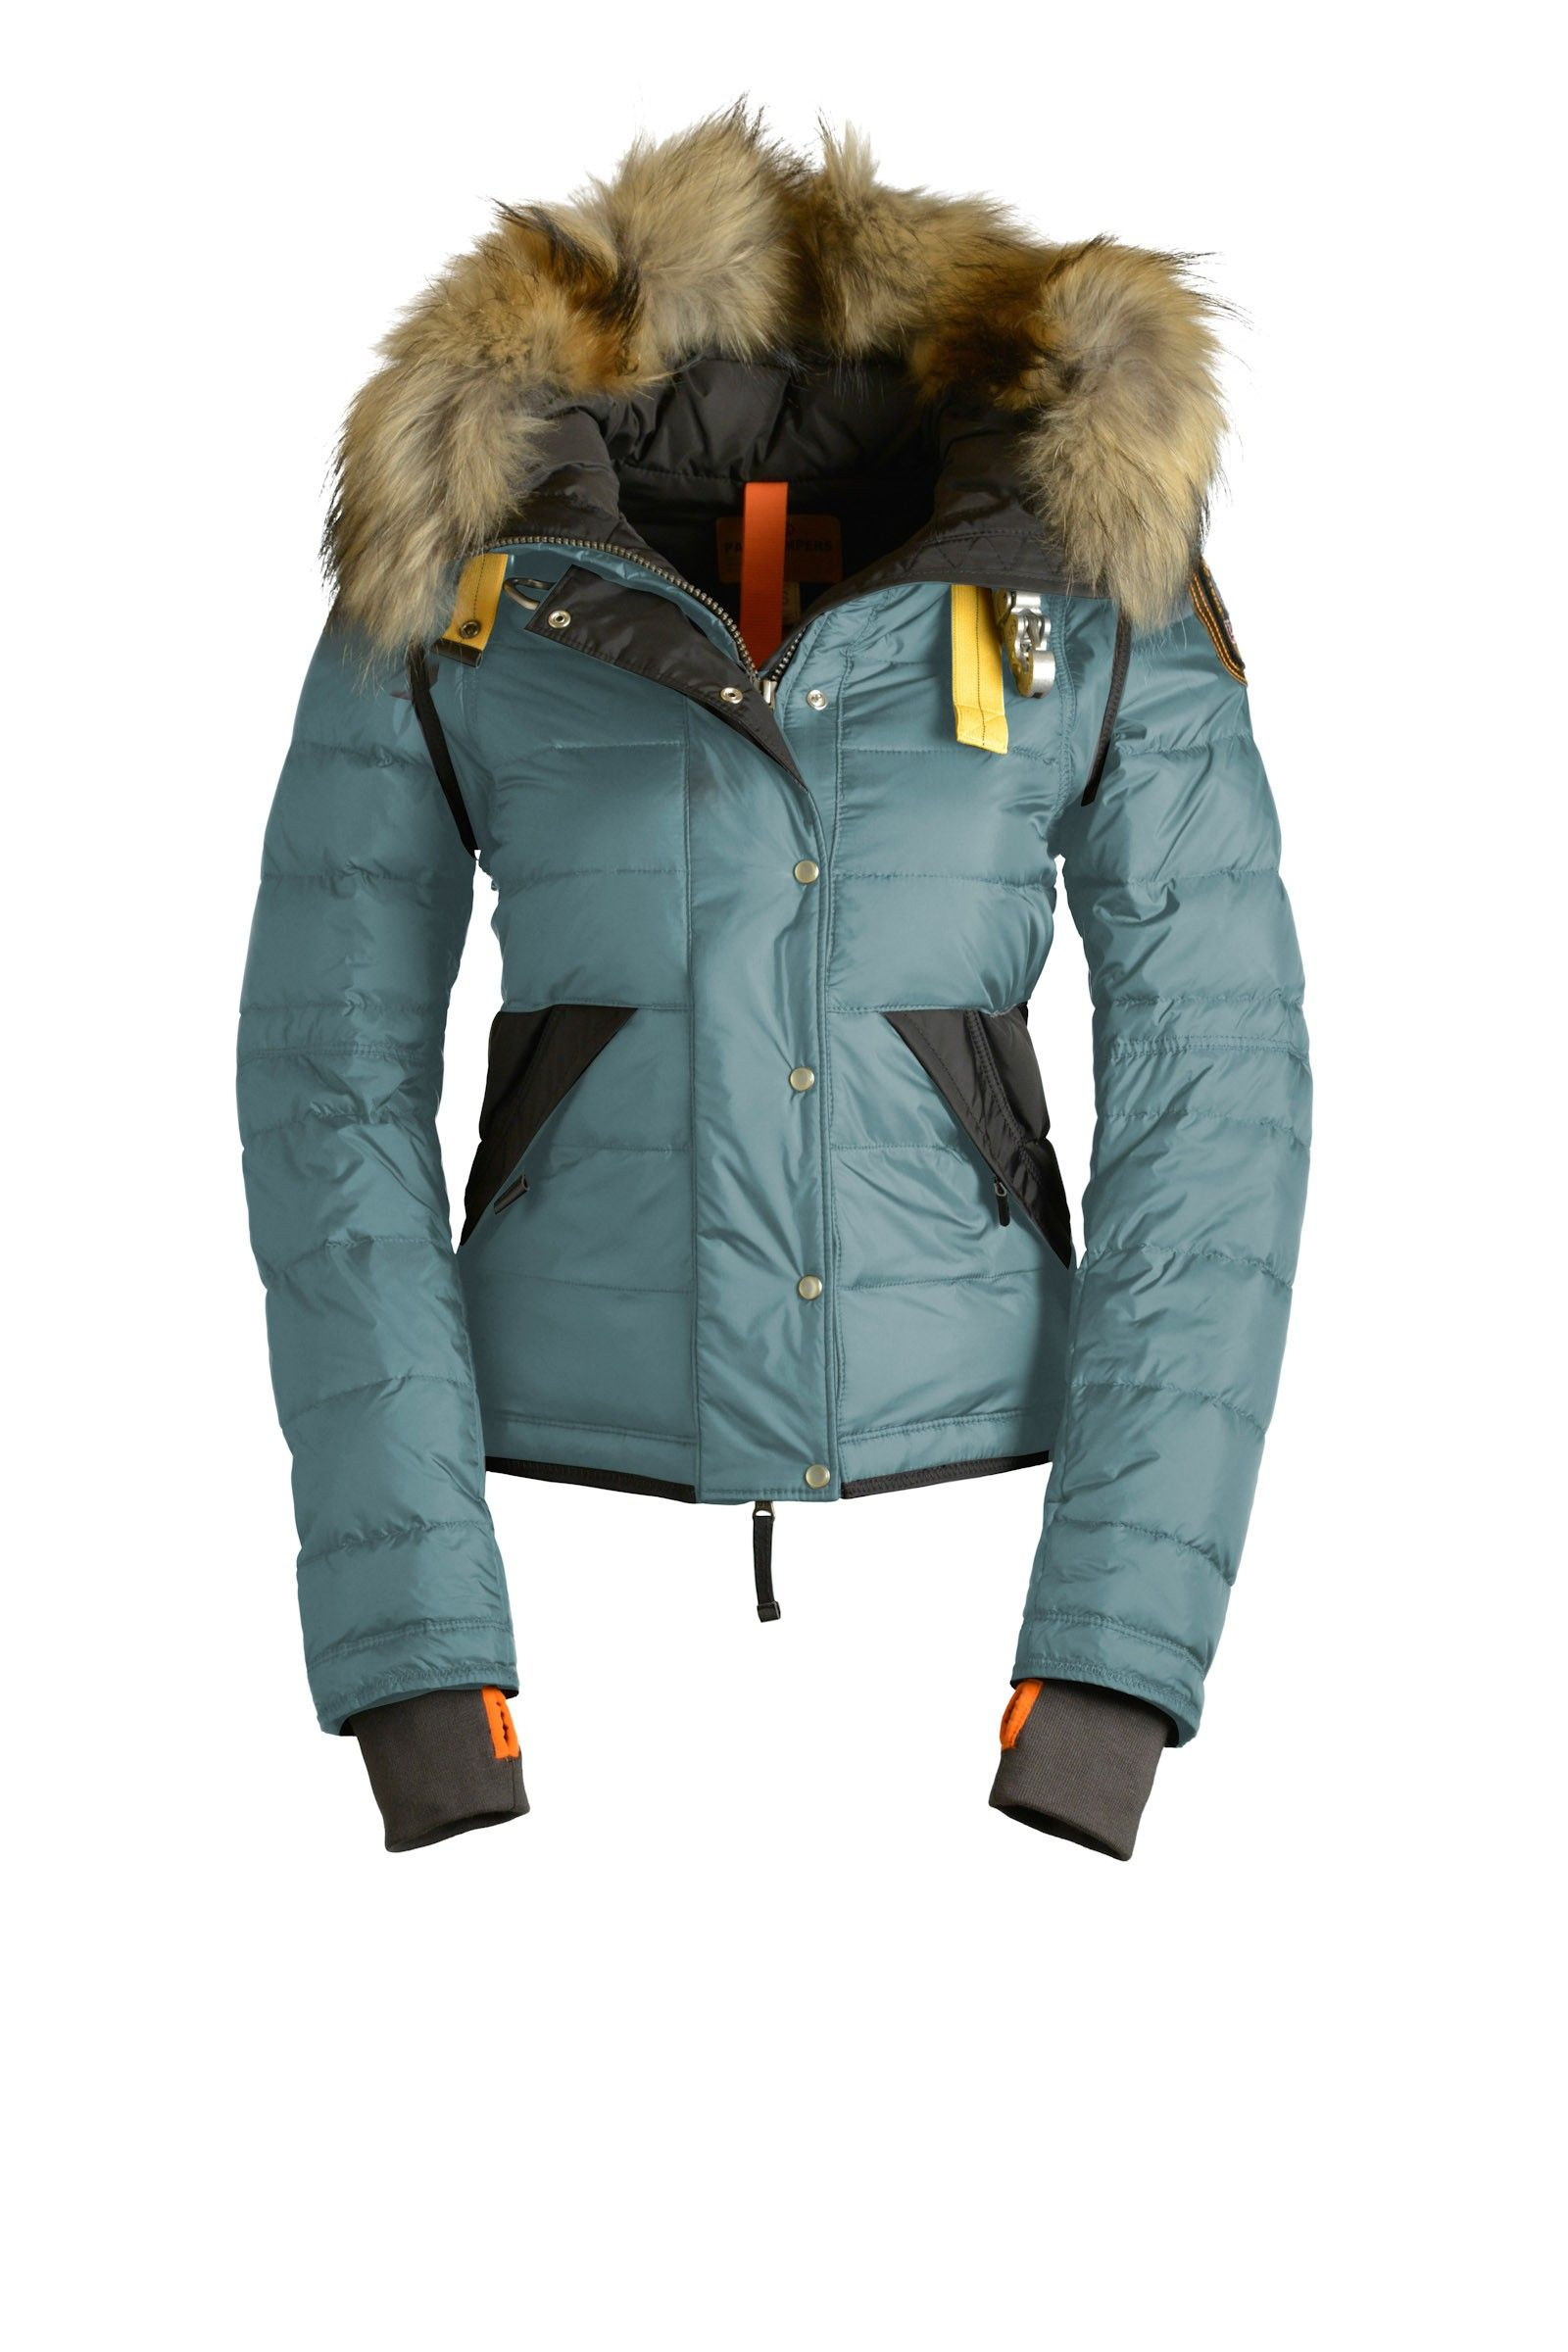 parajumpers outerwear